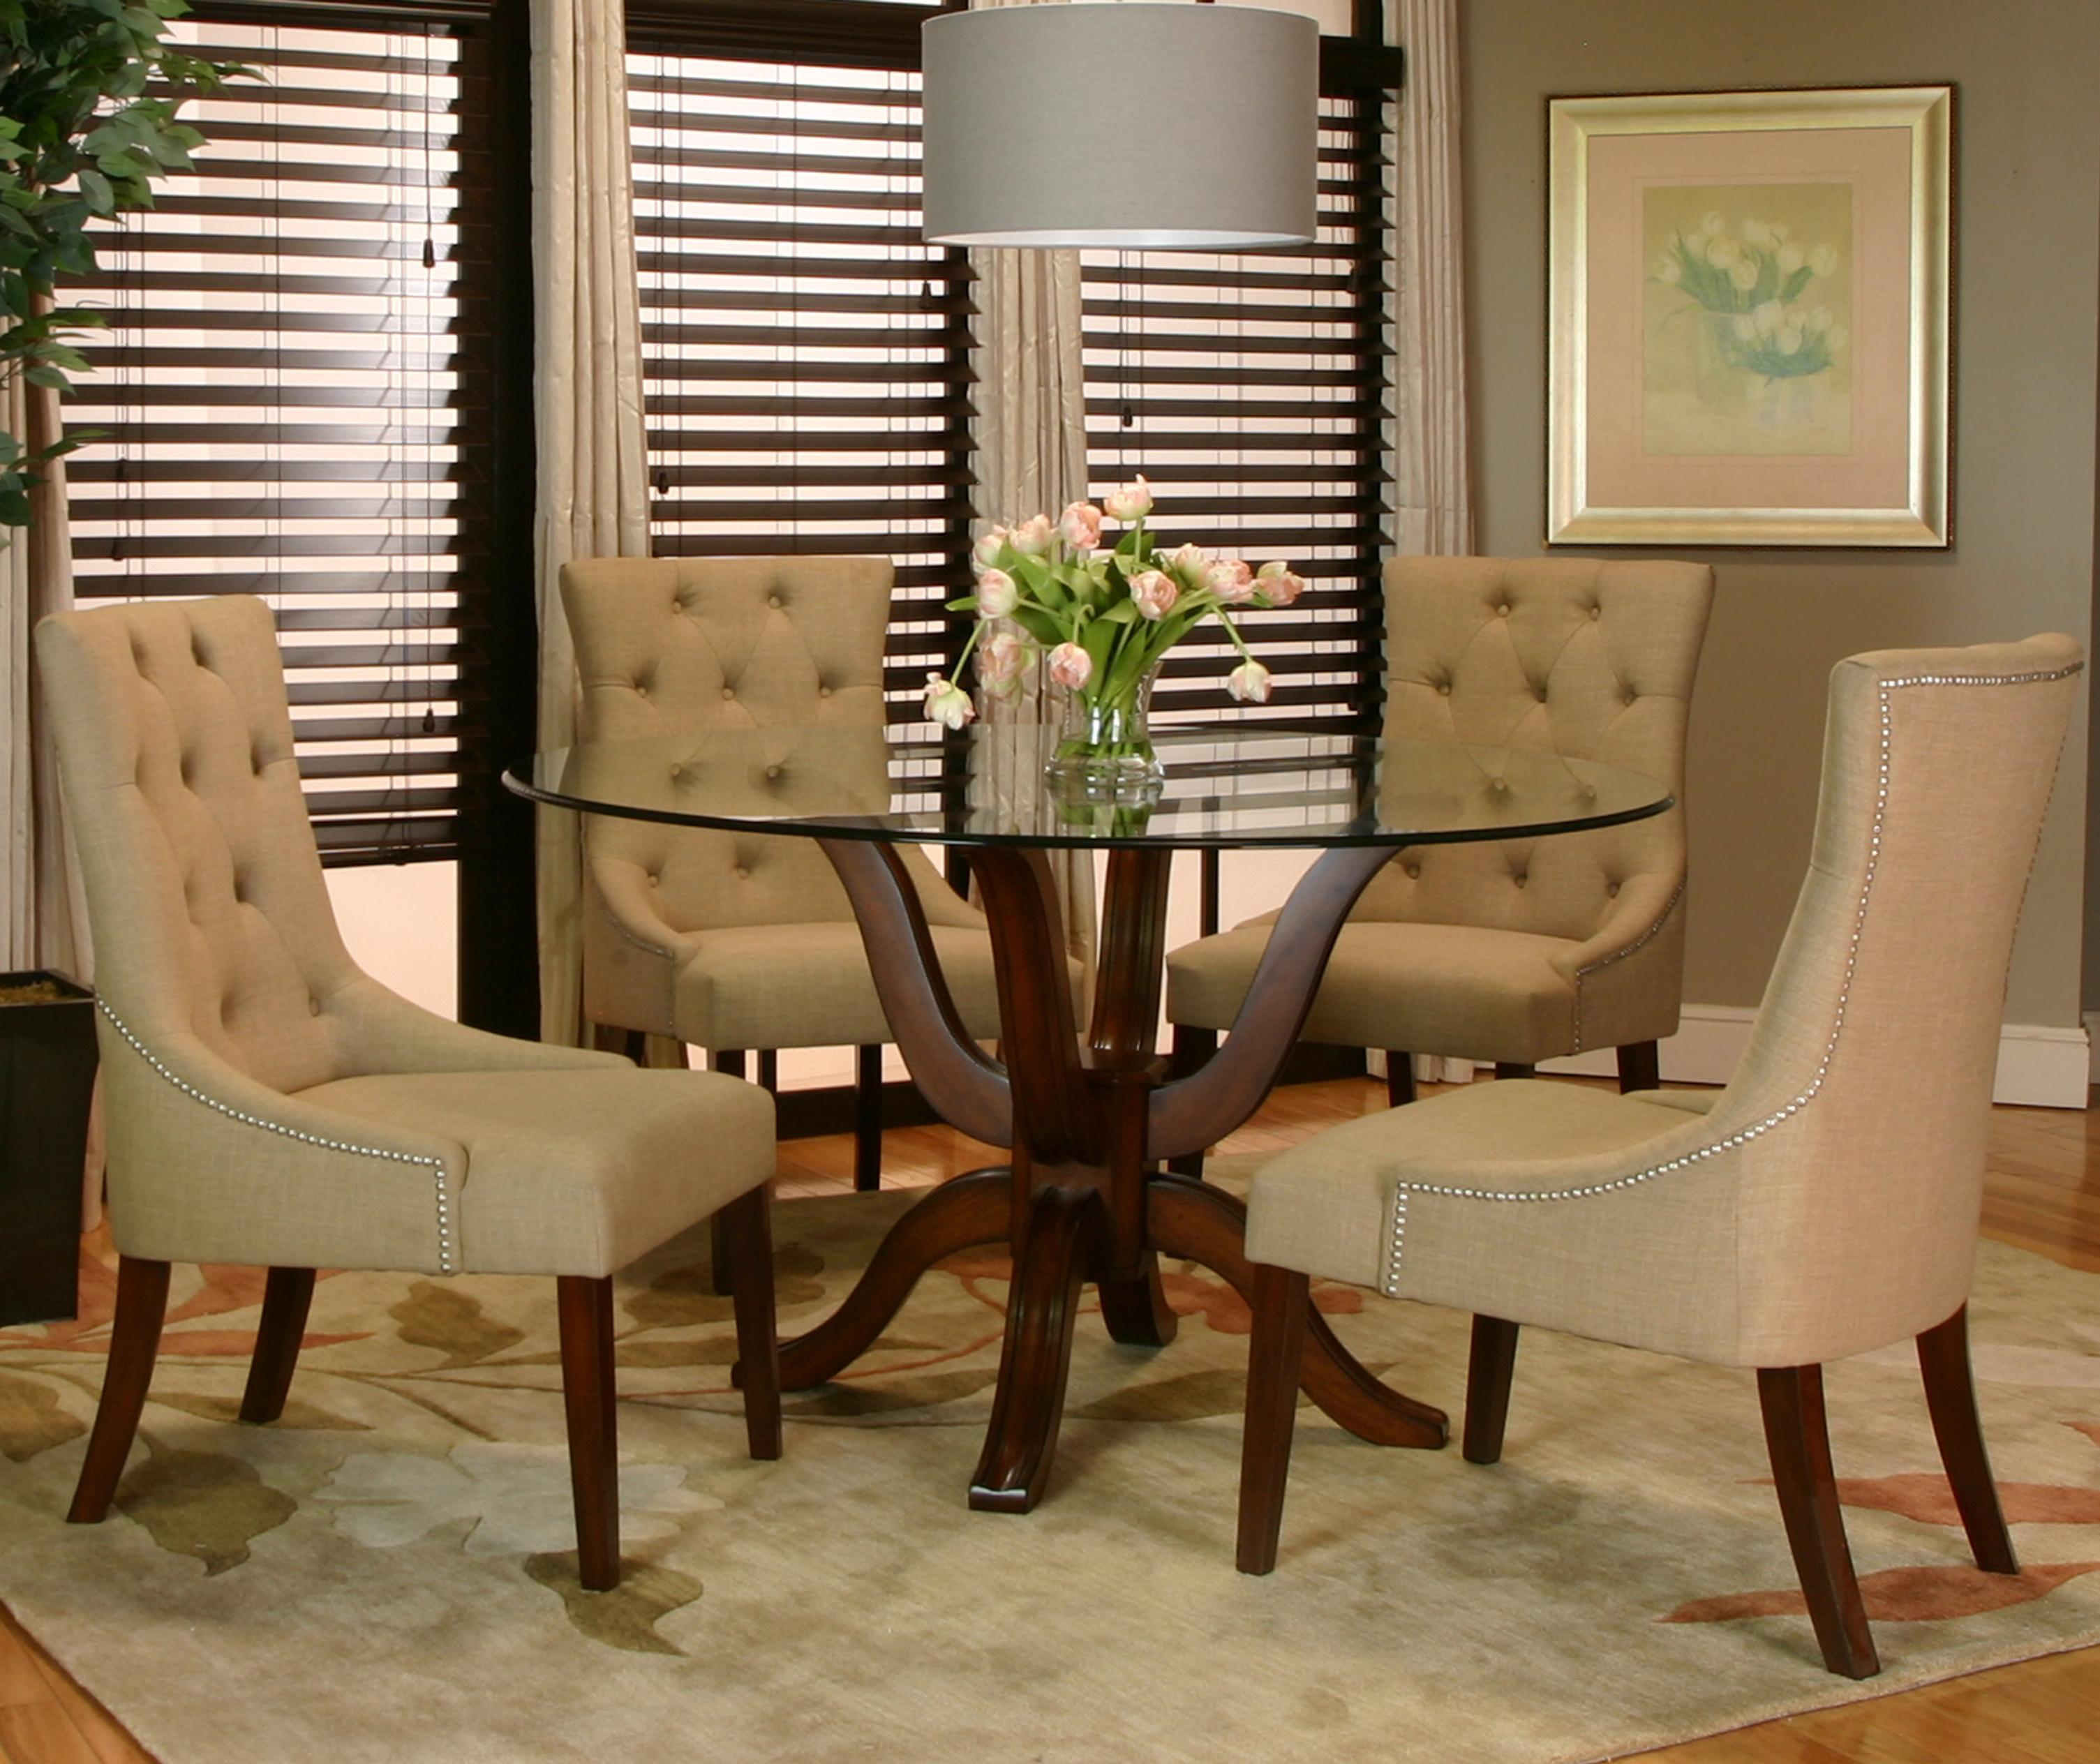 5 Piece Dining Set & Cramco Inc Sonnet 5 Piece Dining Table and Chair Set | Value City ...